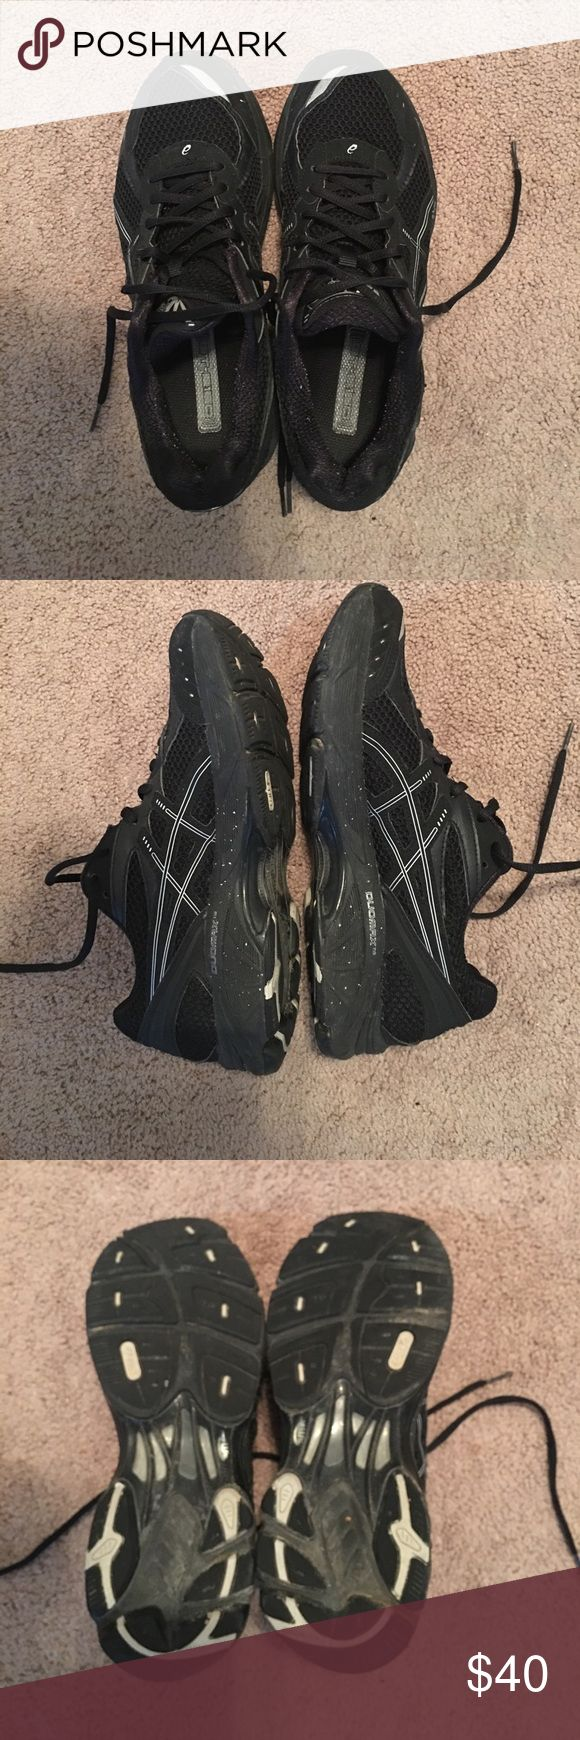 Asics Gel IGS women's size 10 all black Asics IGS Gel All black Women's size 10. Like new. Hardly worn all black shoes. Great shoes to run in or work all day on your feet in. Asics Shoes Athletic Shoes